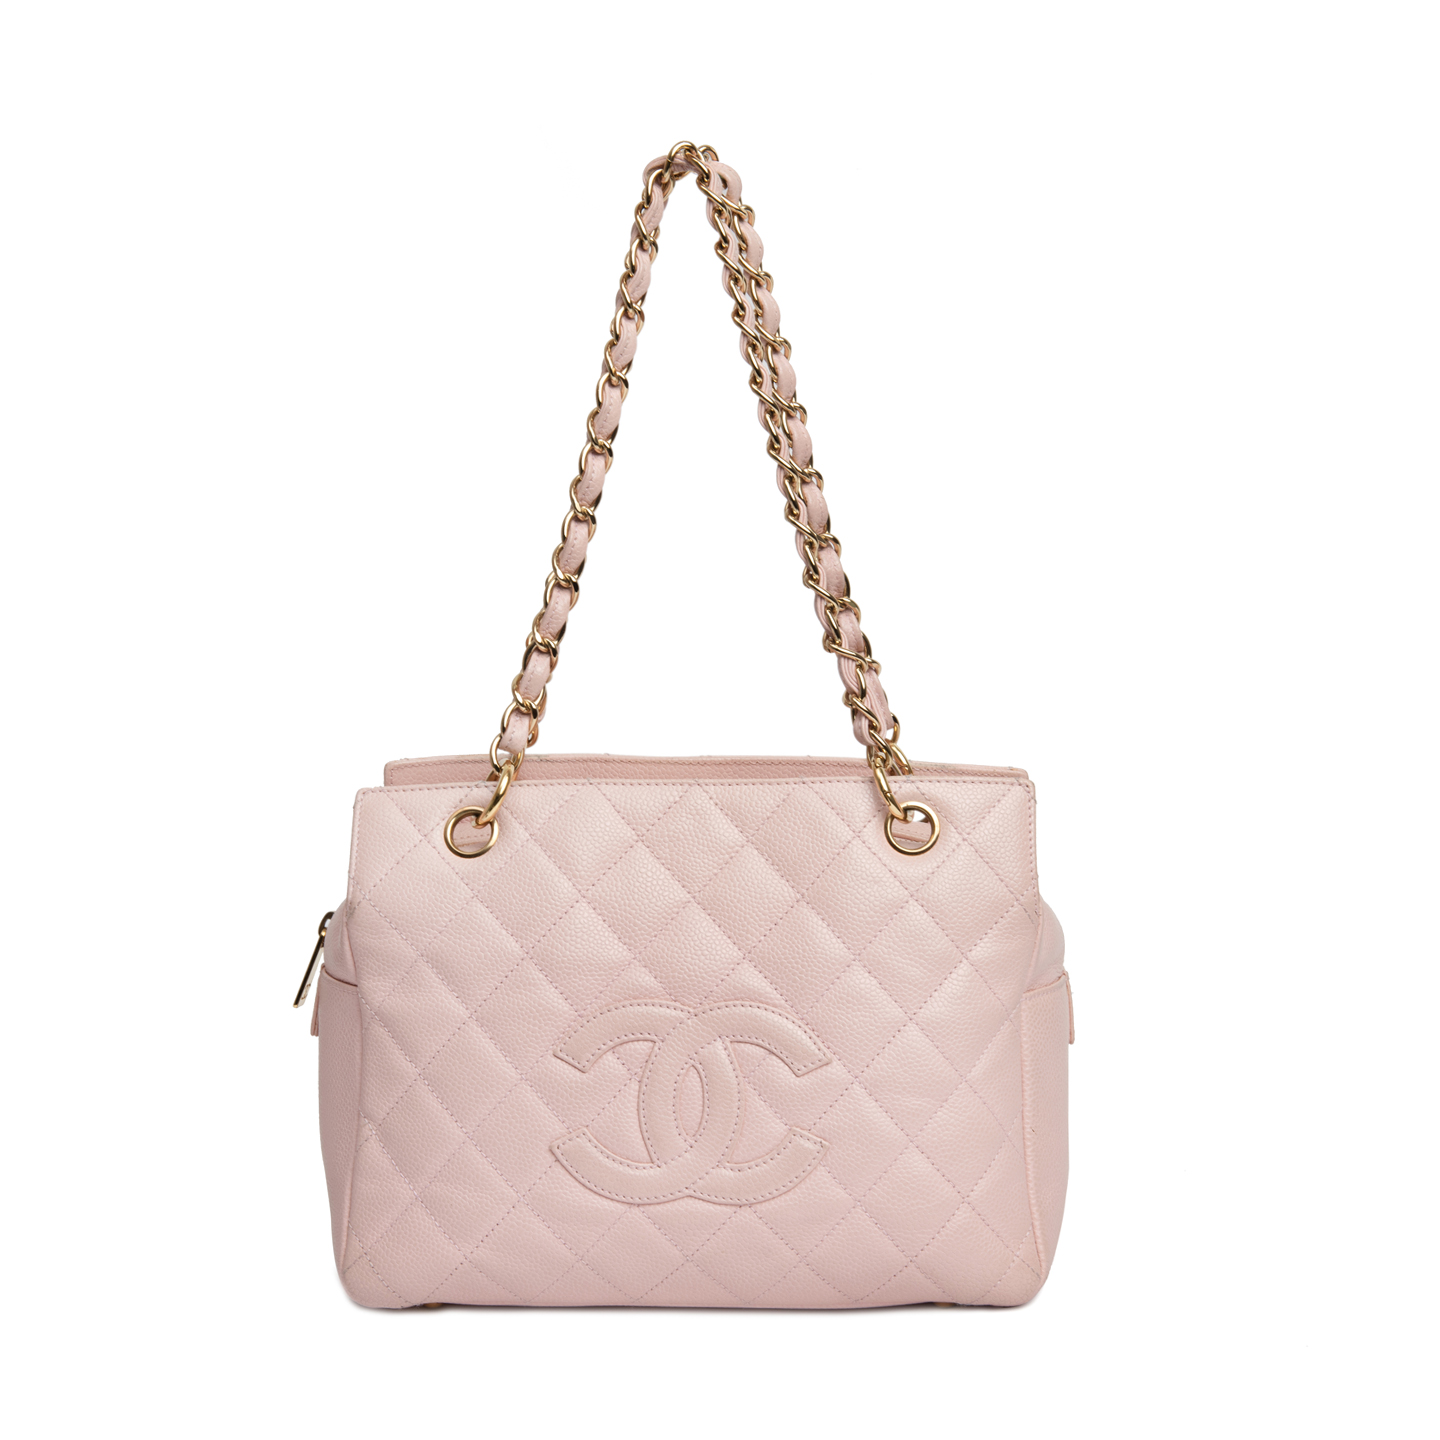 6d4d0fff421d Chanel Pink Quilted Caviar Leather Petite Timeless Shopping Tote Bag